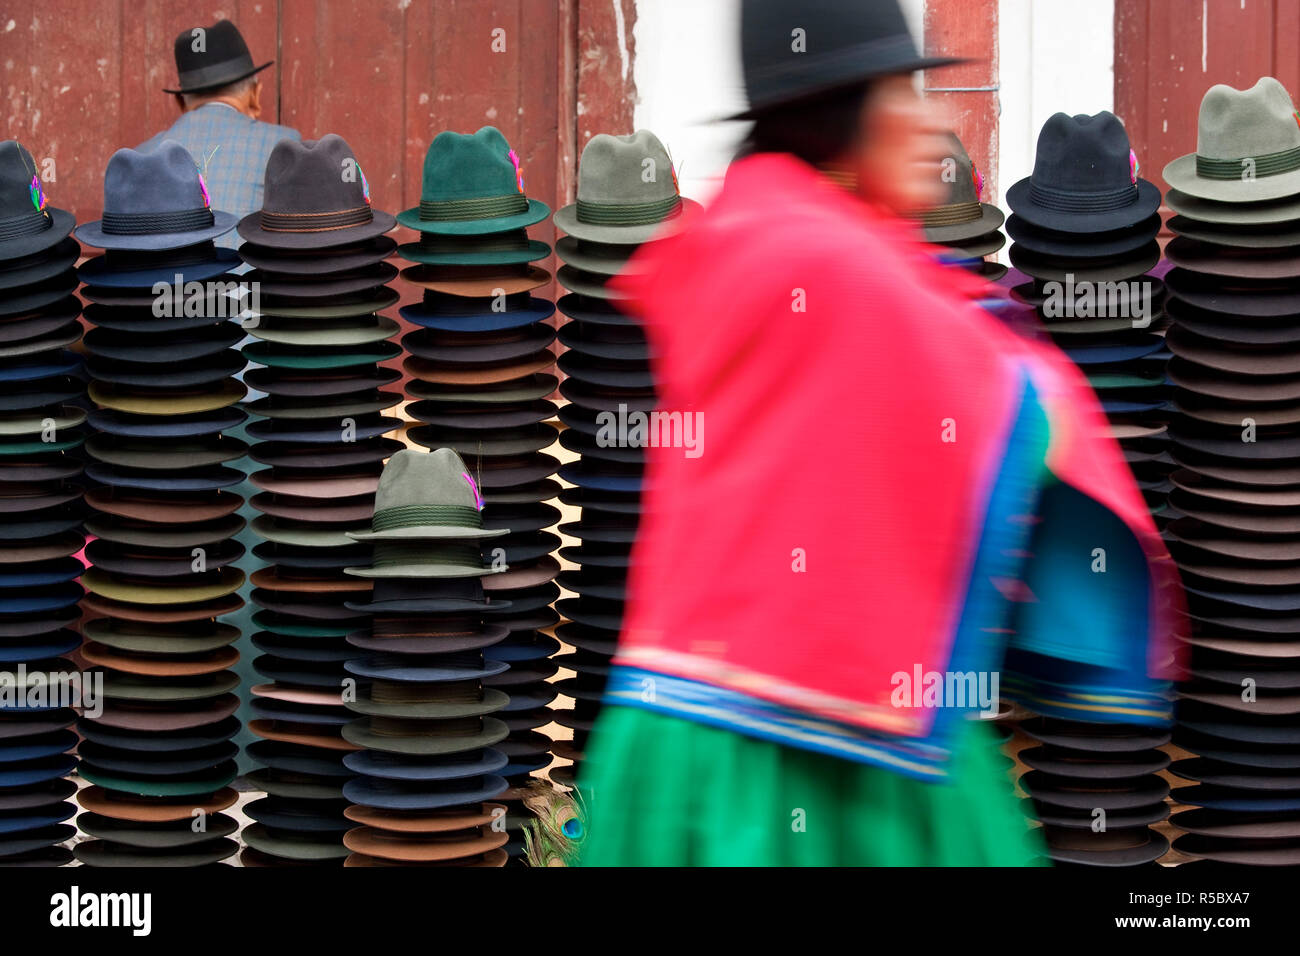 cb727dd4ed2a6 Trilby Hats Stock Photos   Trilby Hats Stock Images - Alamy